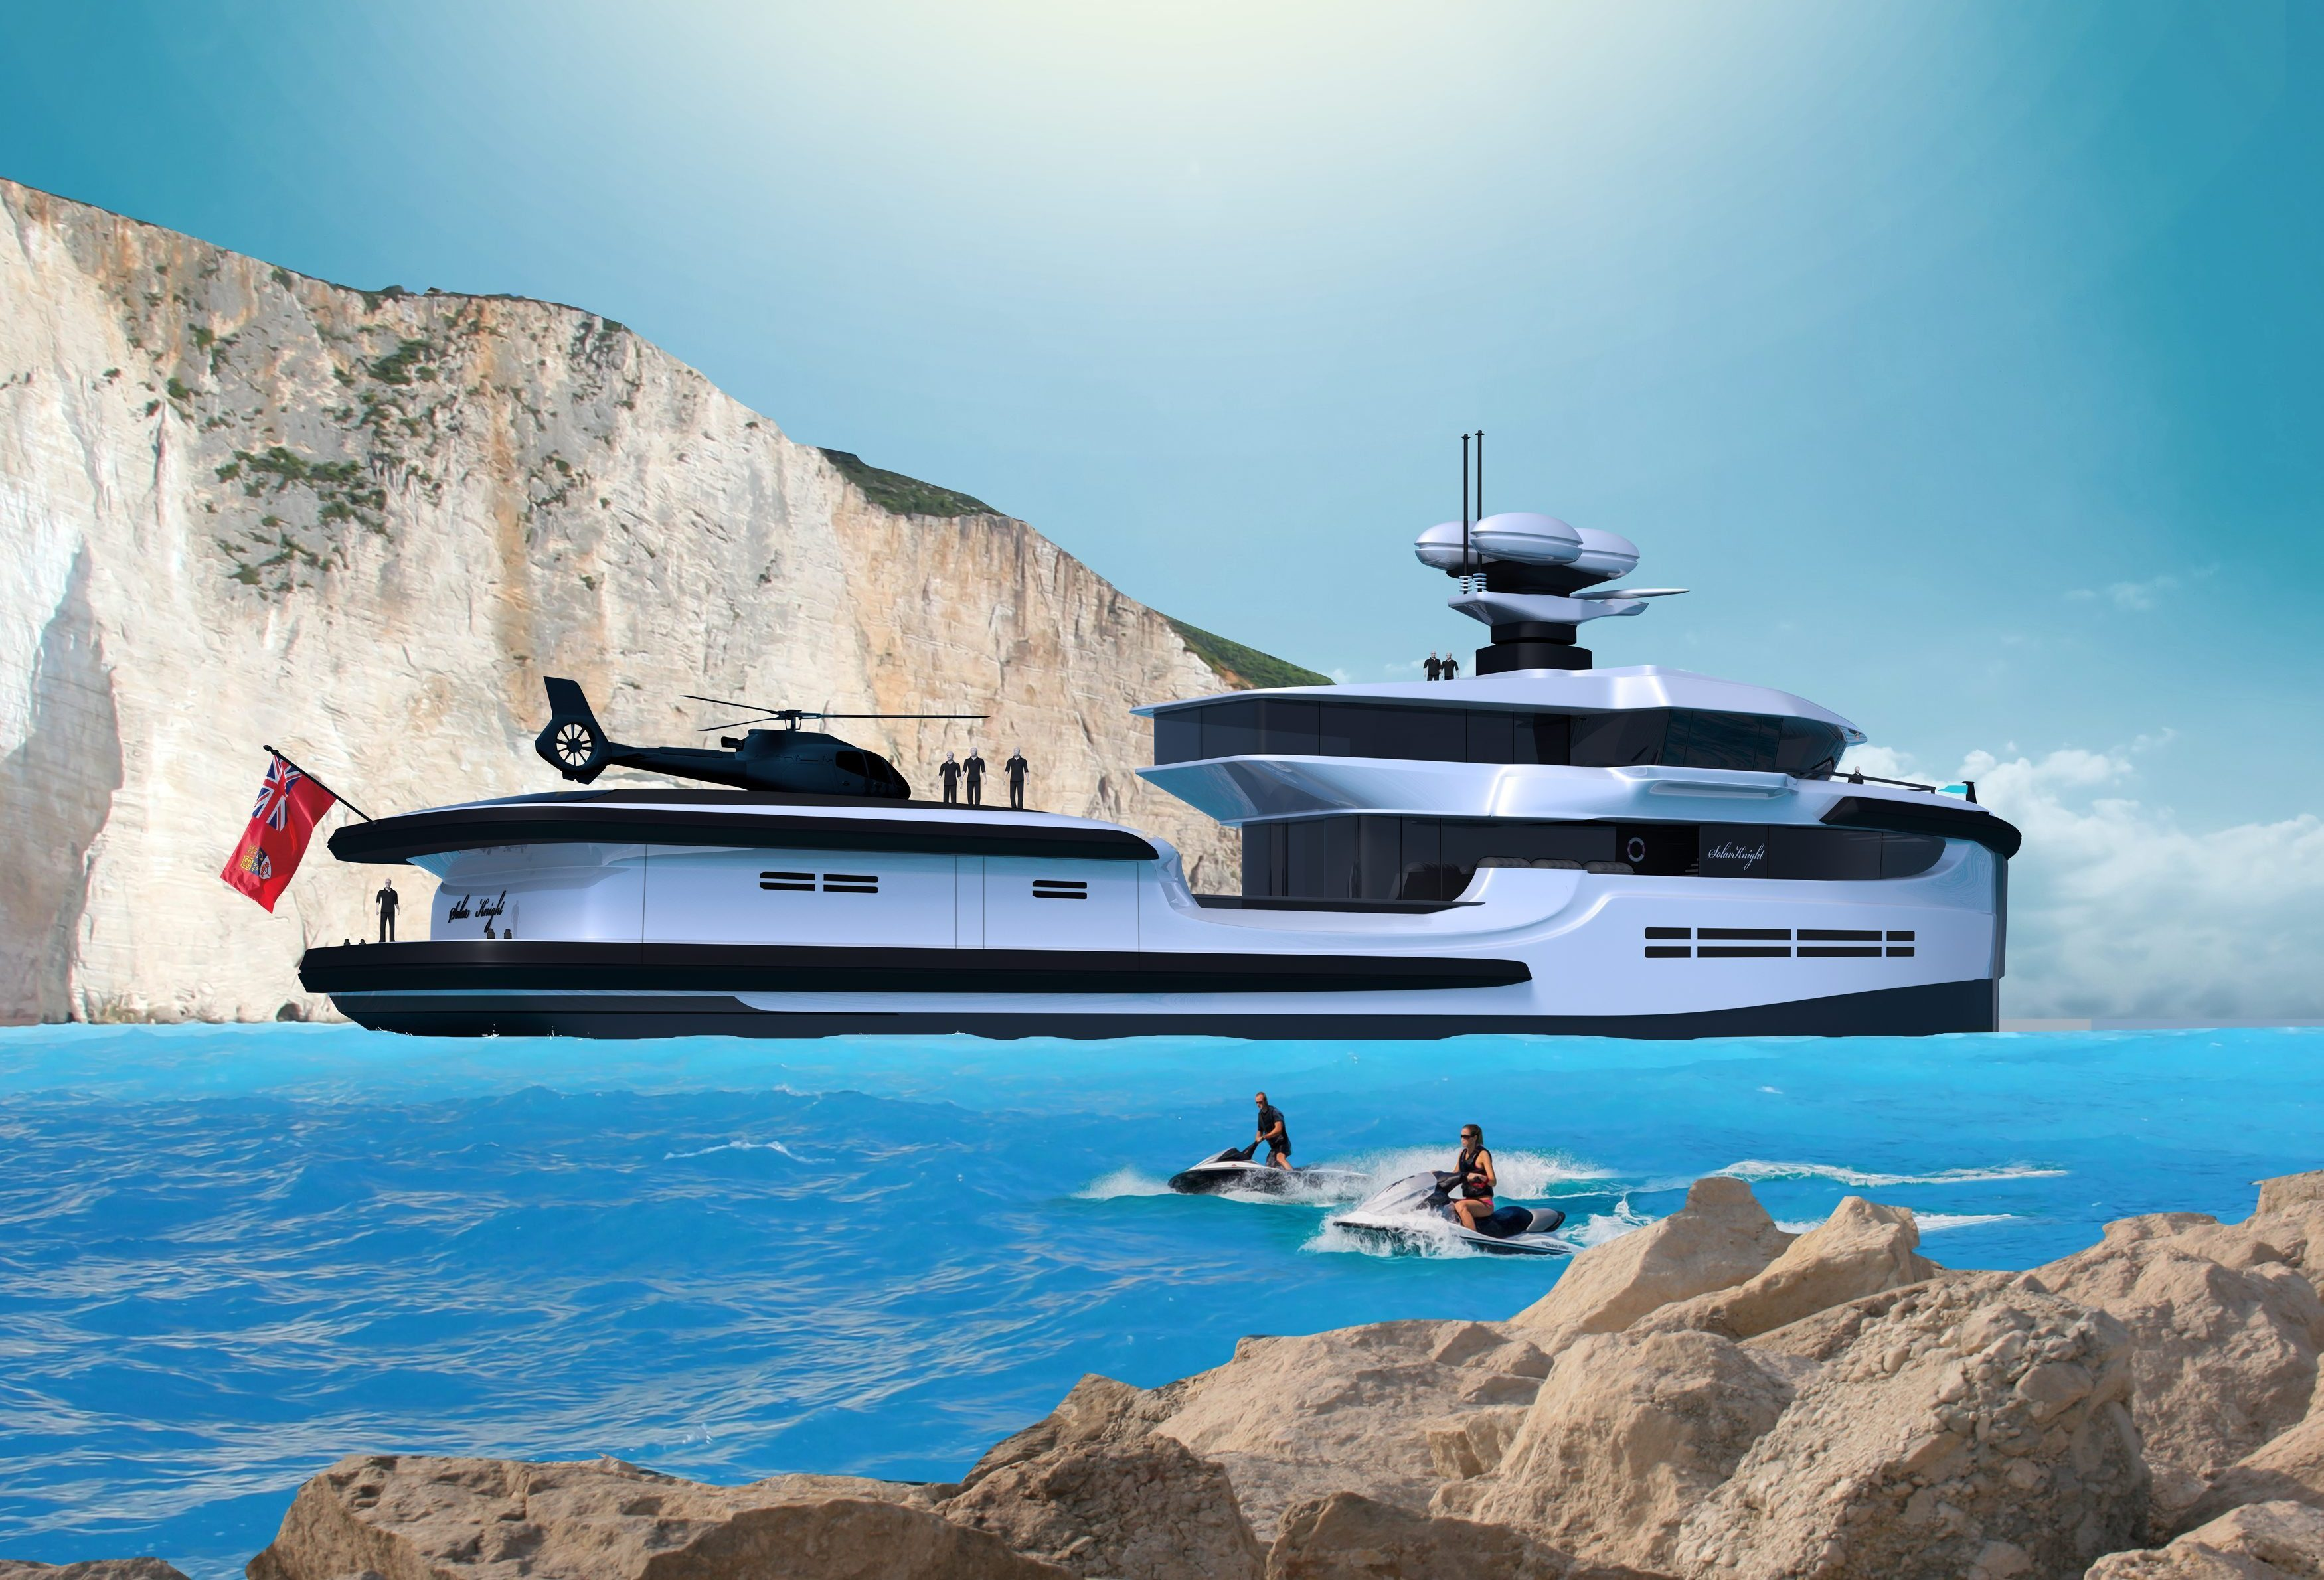 Simply moor up and pop out the jet skis when you sail the seas in Green Expedition